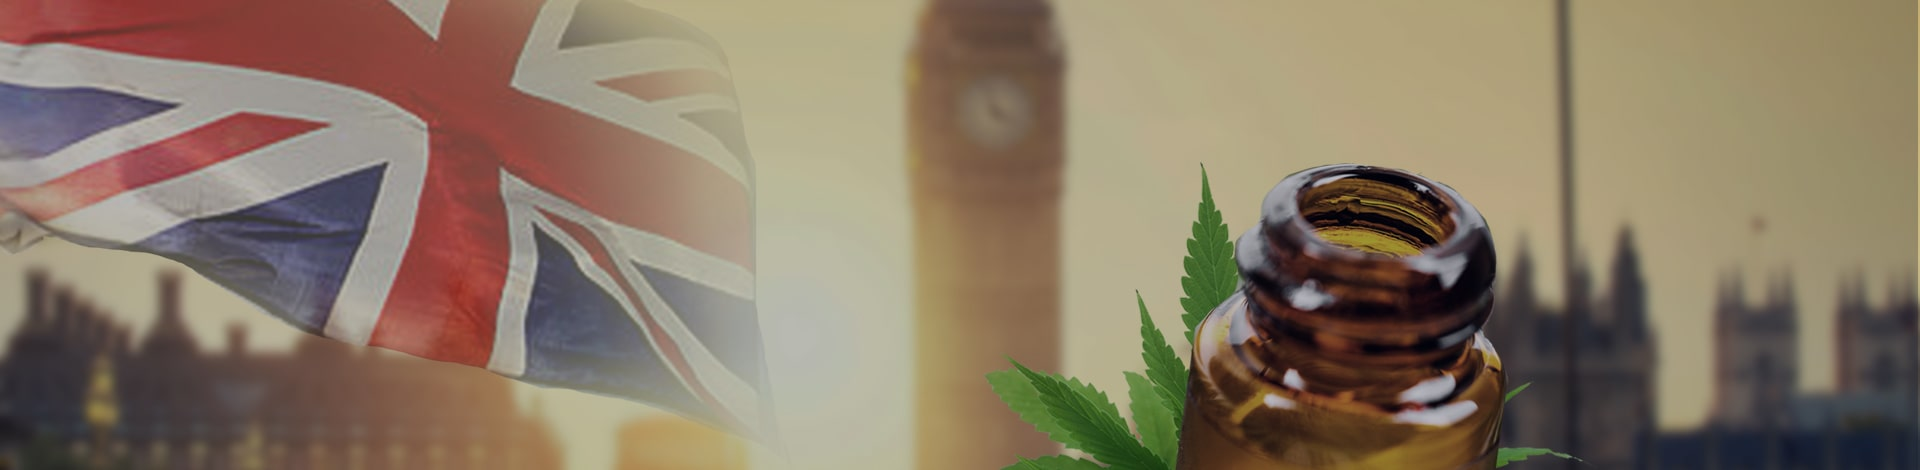 Best CBD Oils UK: Our Top 10 Picks